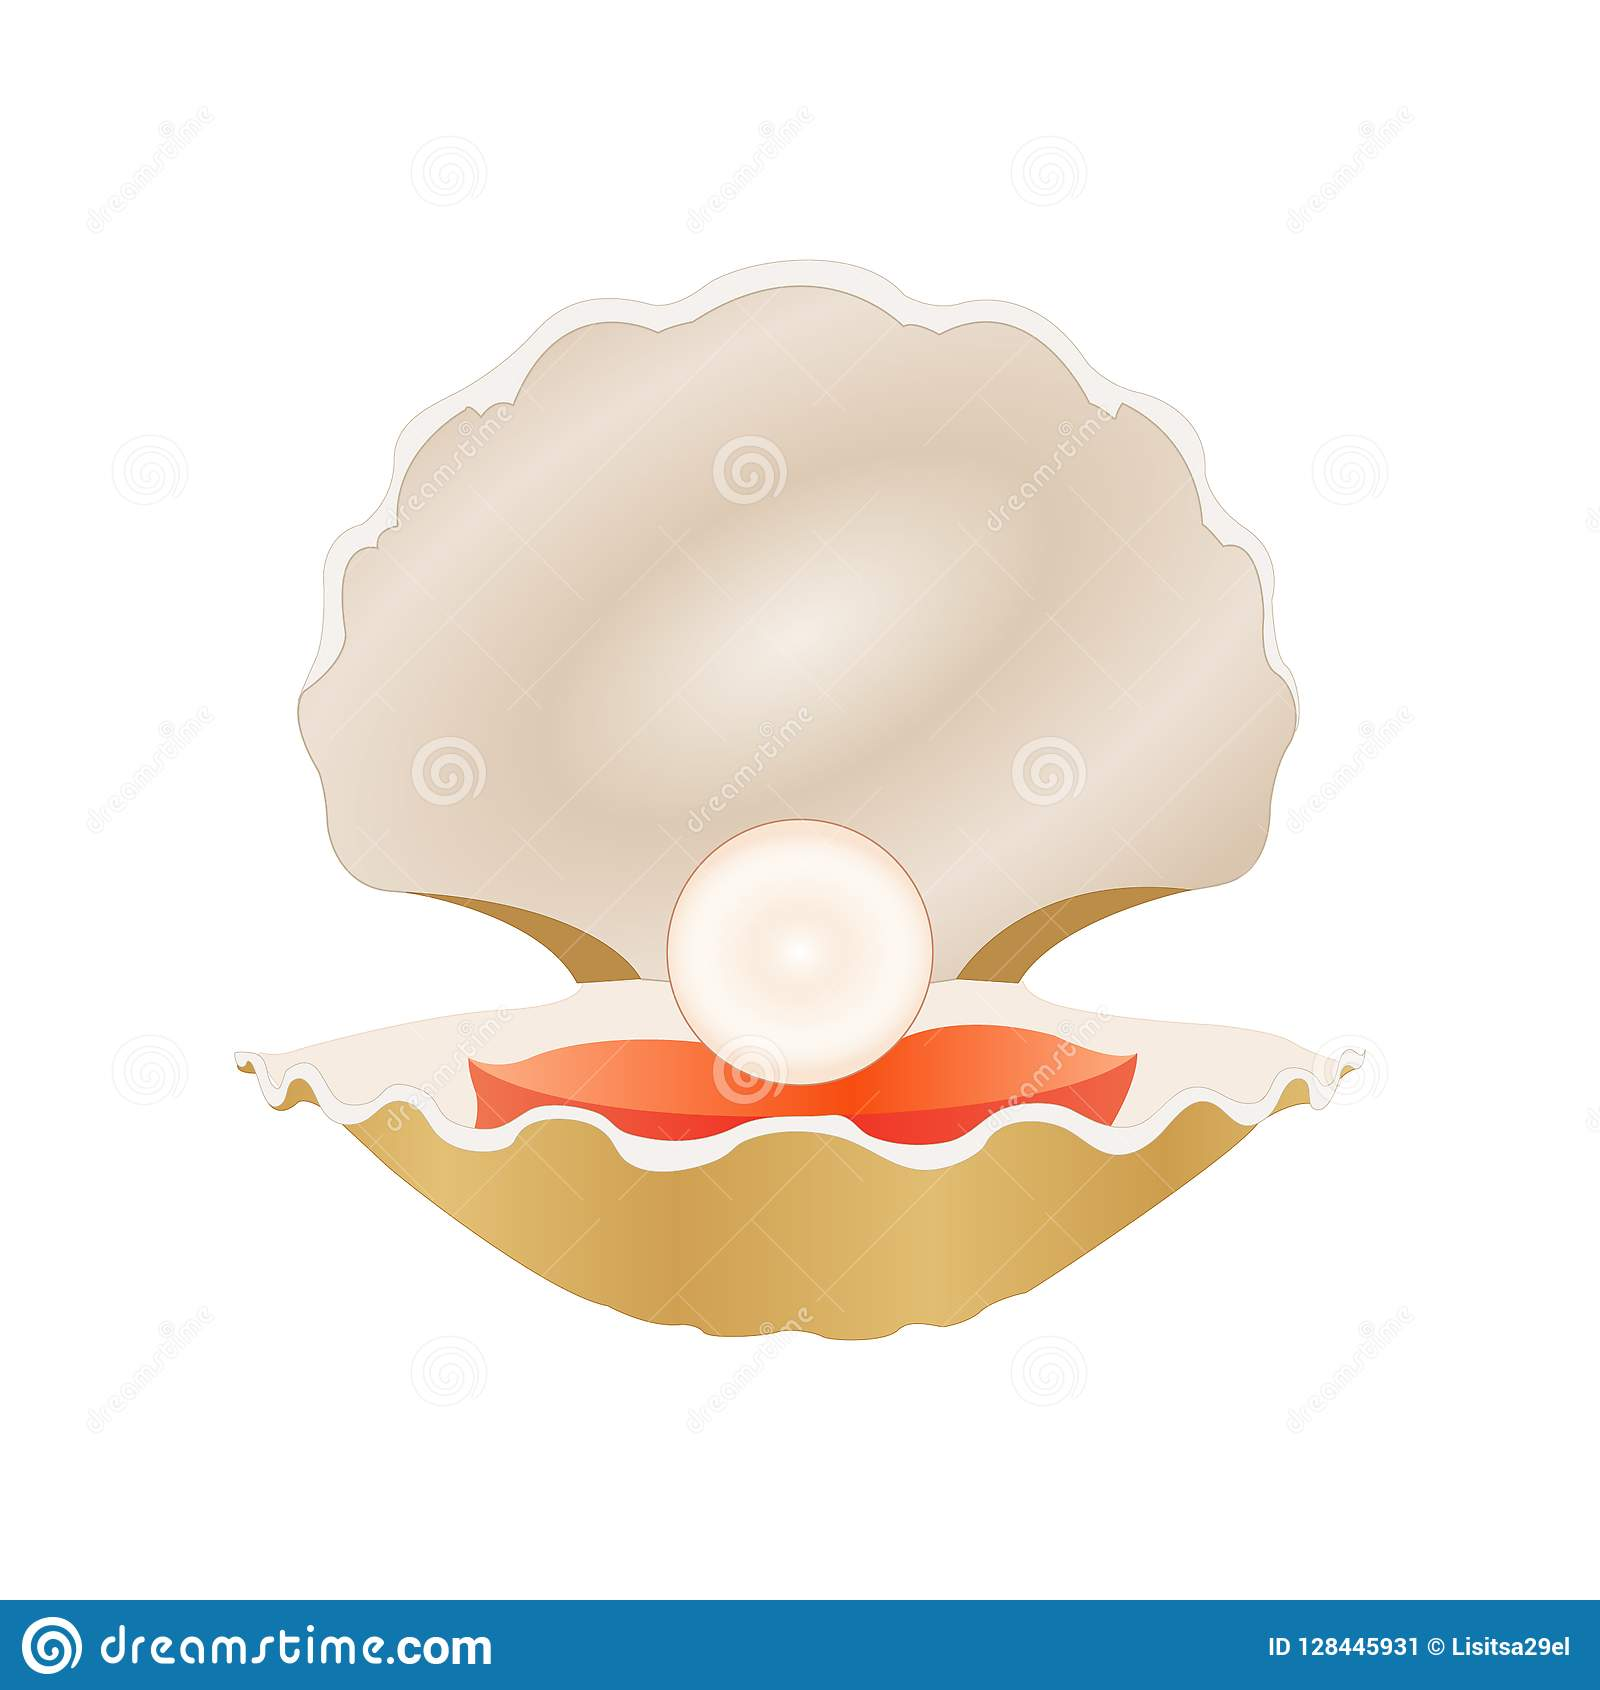 Pearl in the shell stock vector. Illustration of season ...